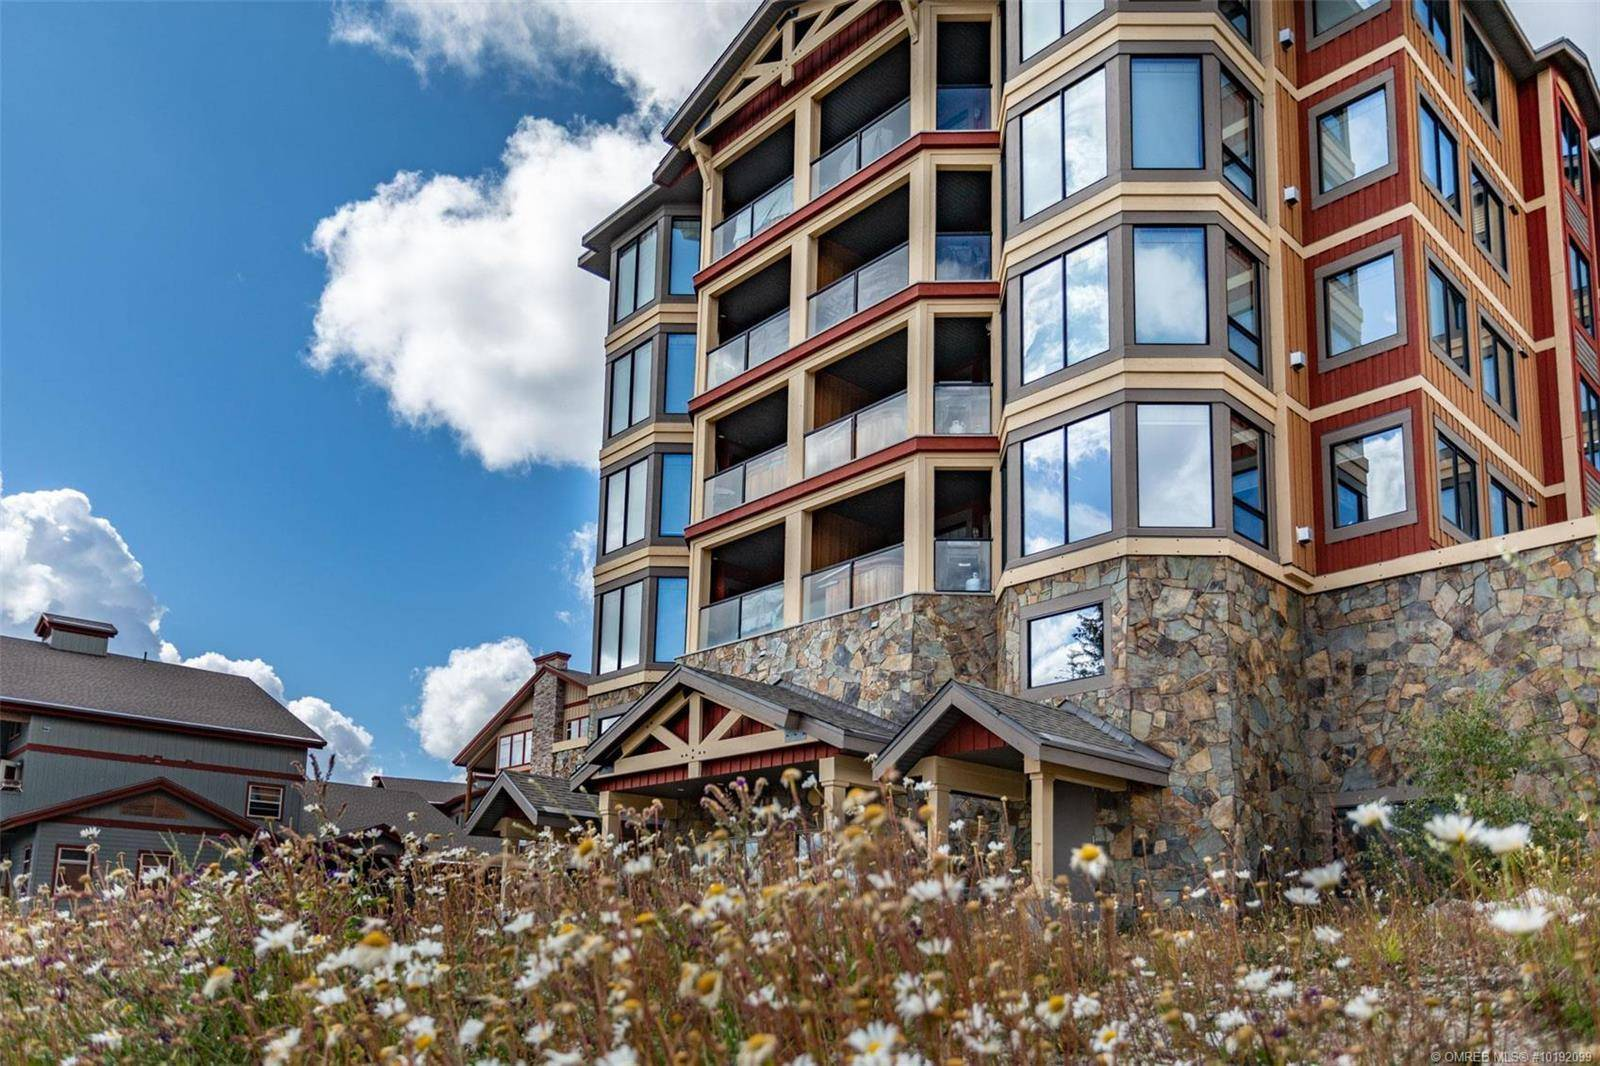 Buliding: 5085 Snowbird Way, Big White, BC